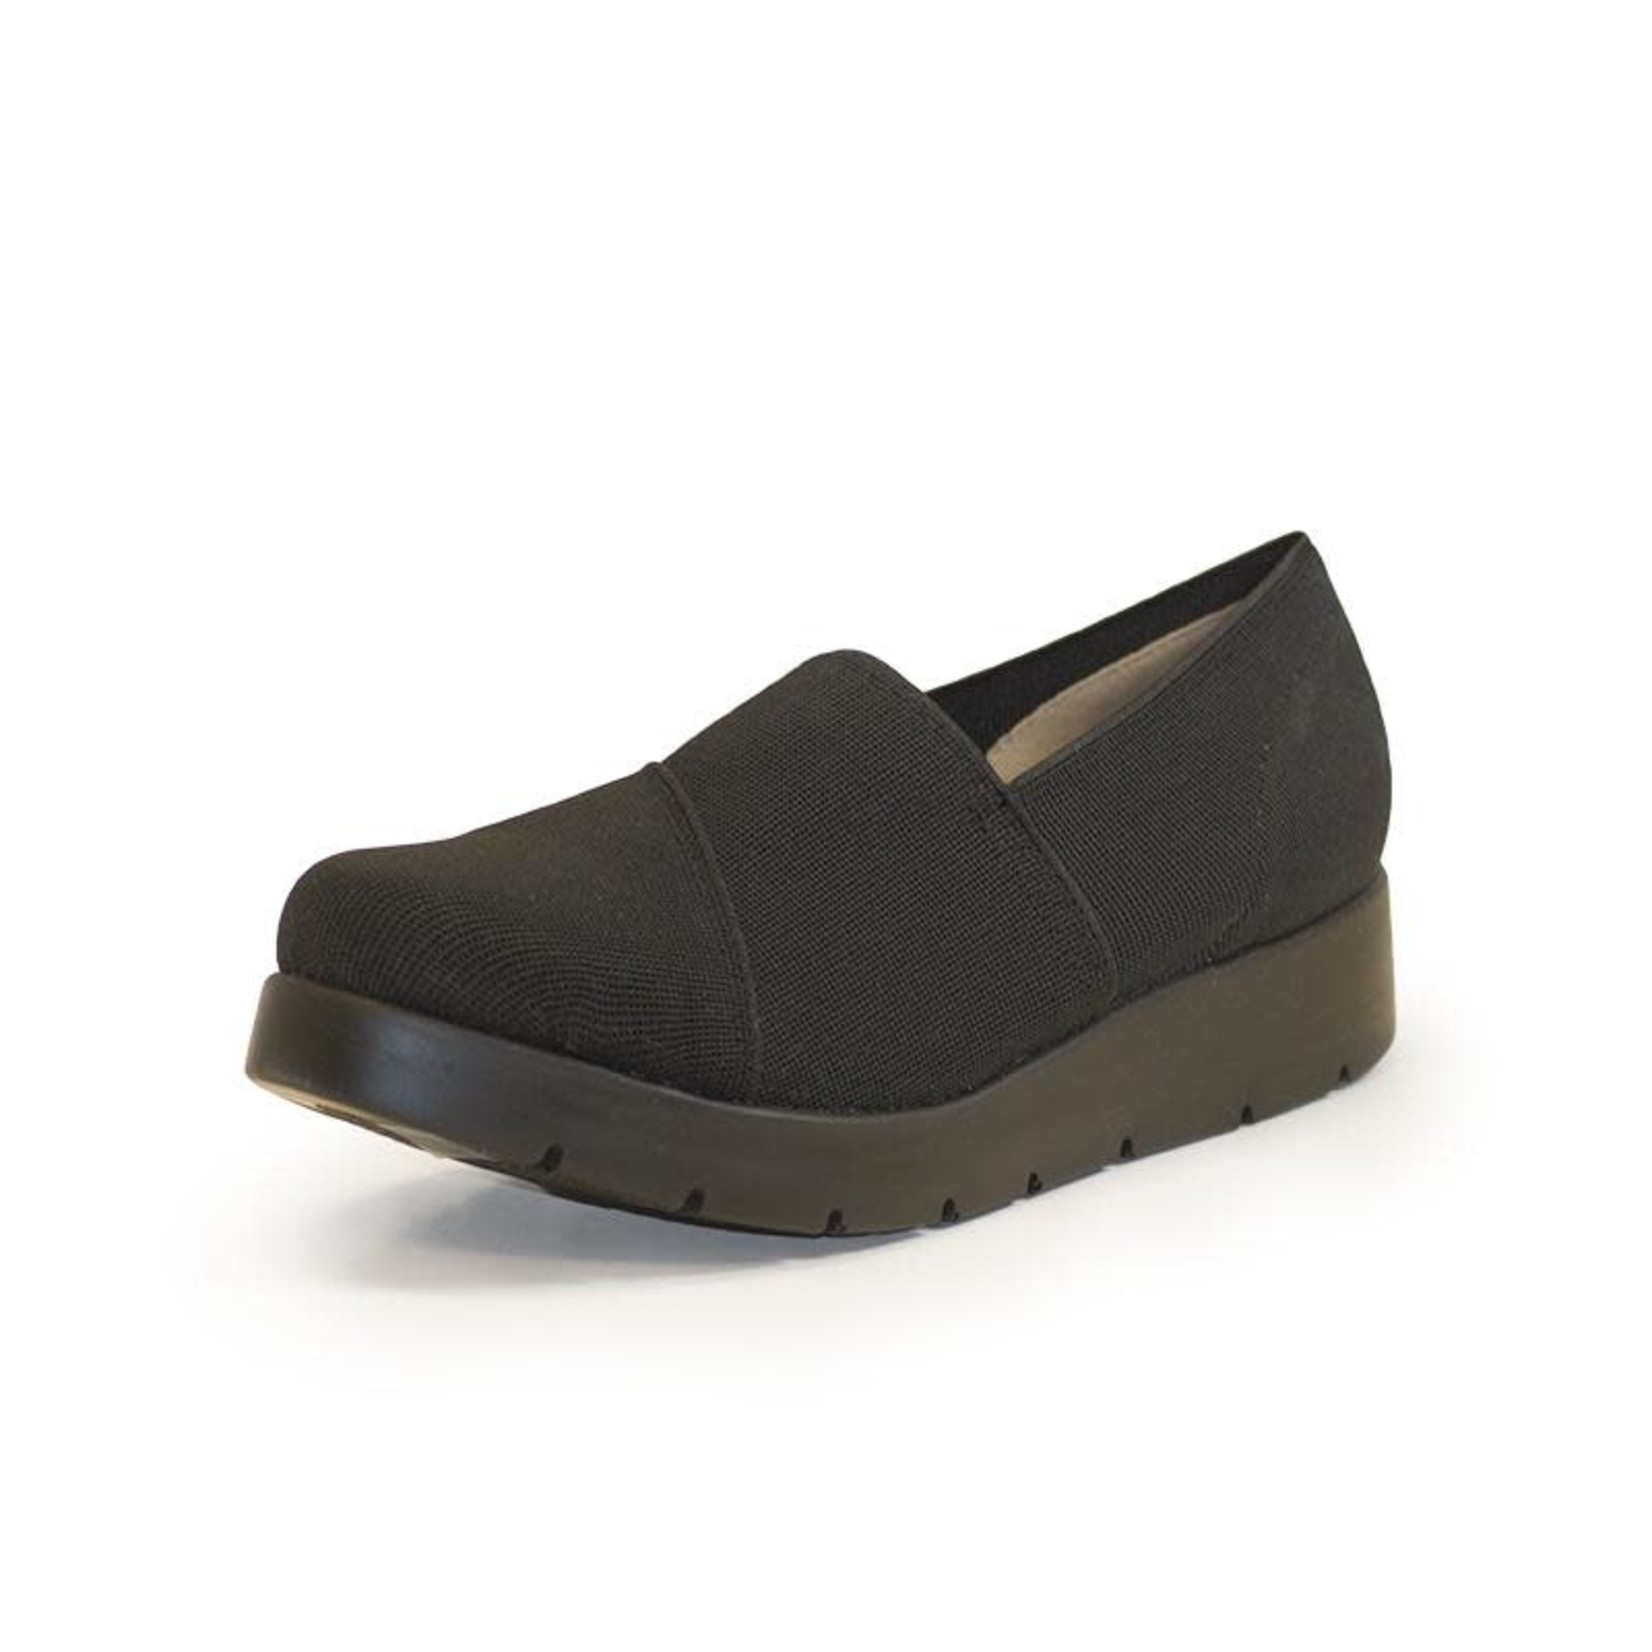 Milly Shoe in Black 9